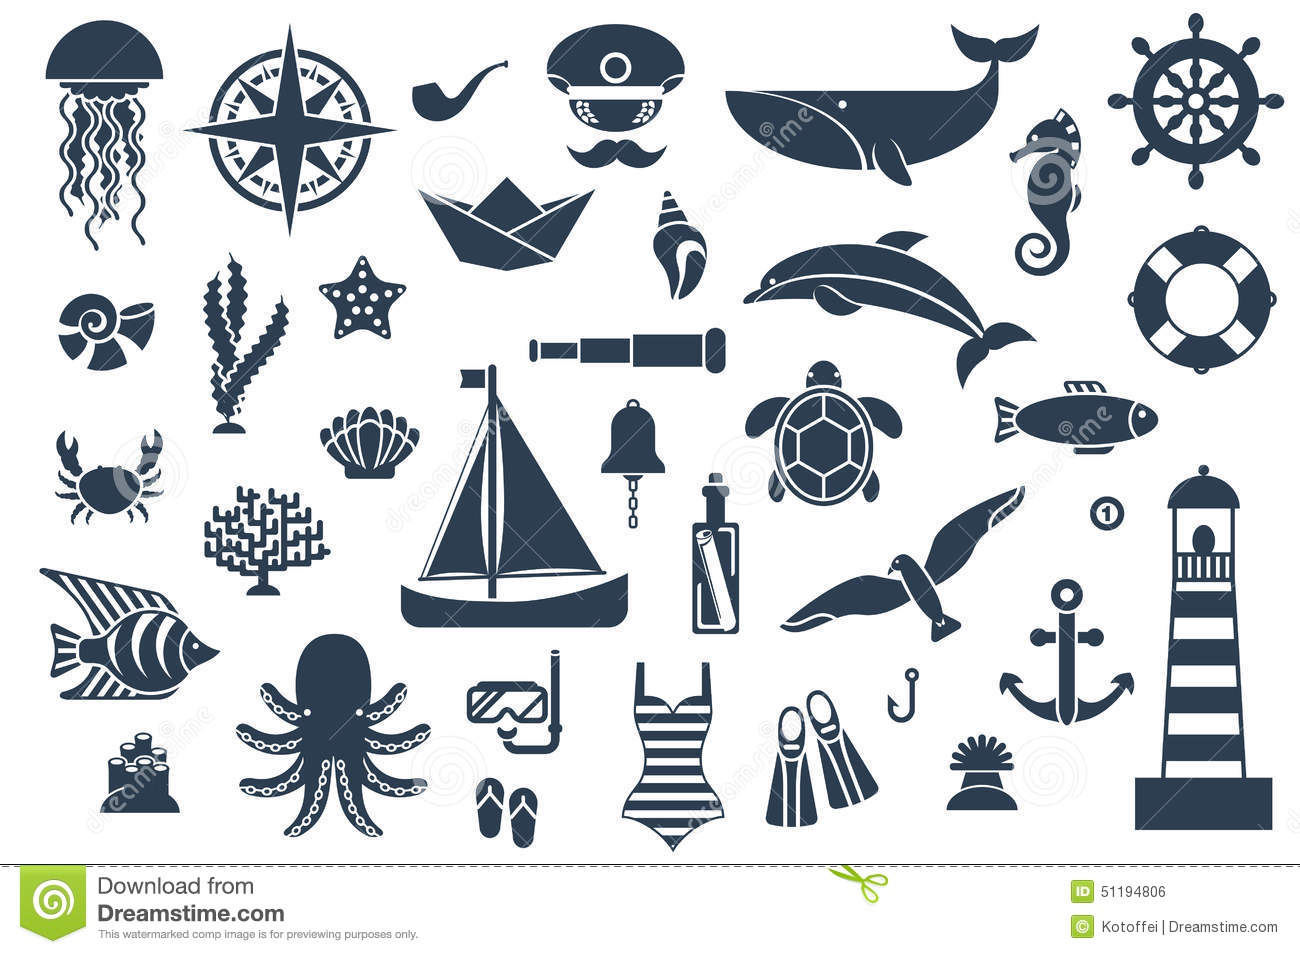 Stock Illustration Flat Icons Sea Creatures Symbols Vector Illustration Marine Leisure Sport Nautical Design Elements Image51194806 on Stock Illustration Fish Silhouette